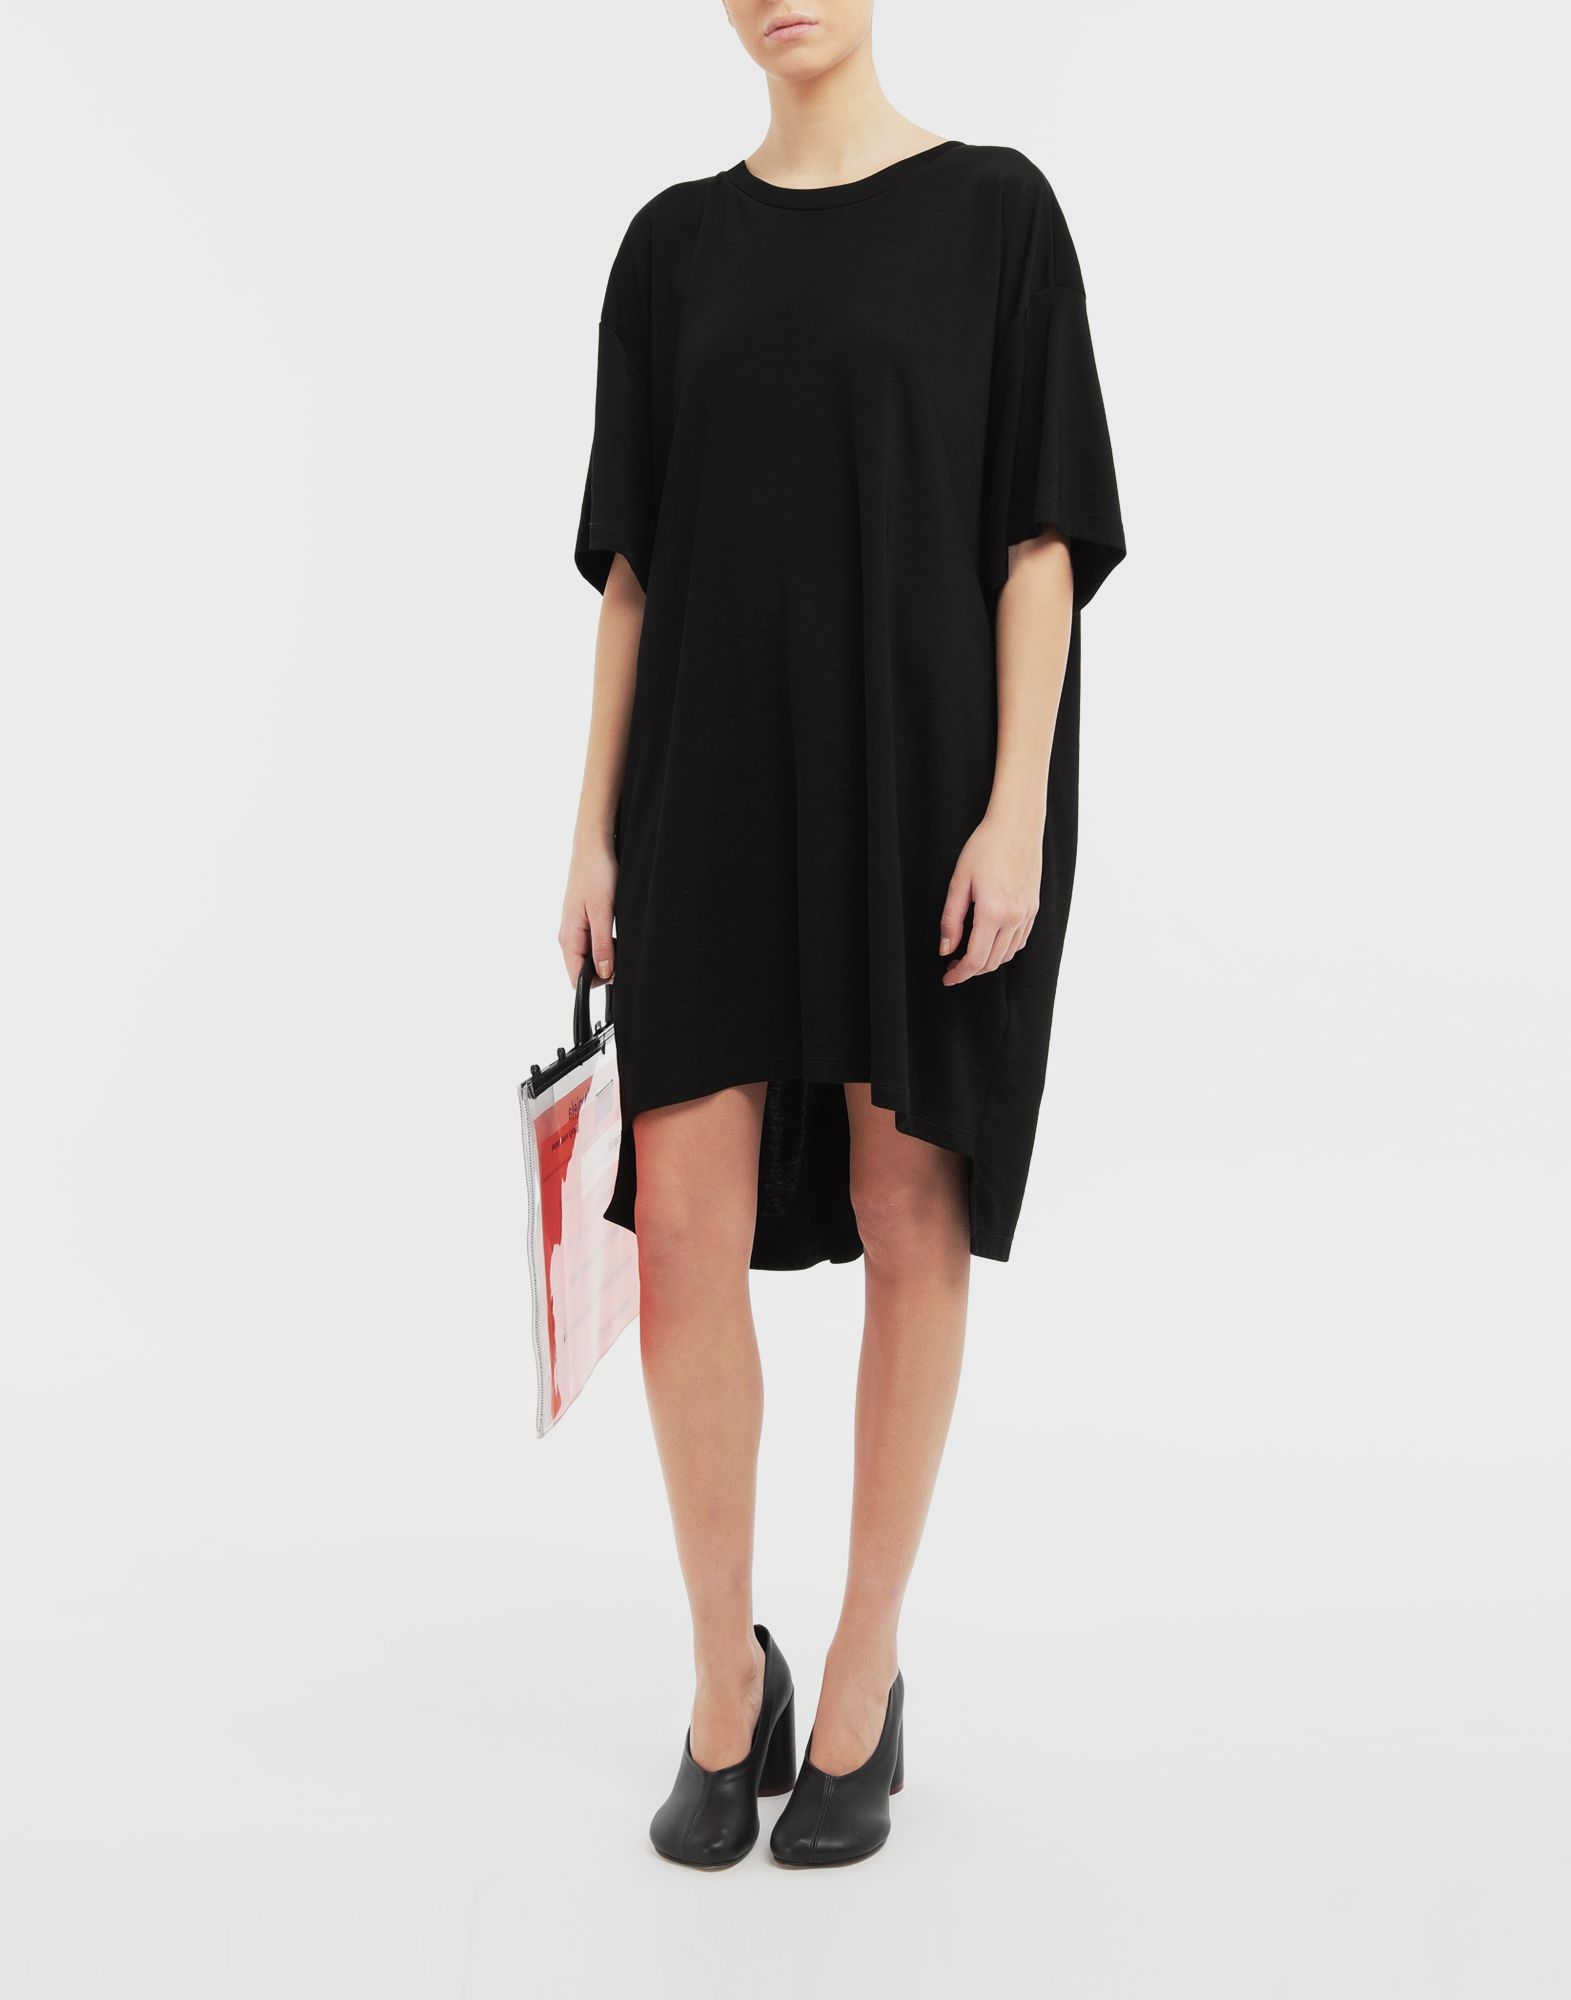 MM6 MAISON MARGIELA Dropped back T-shirt dress Short dress Woman d